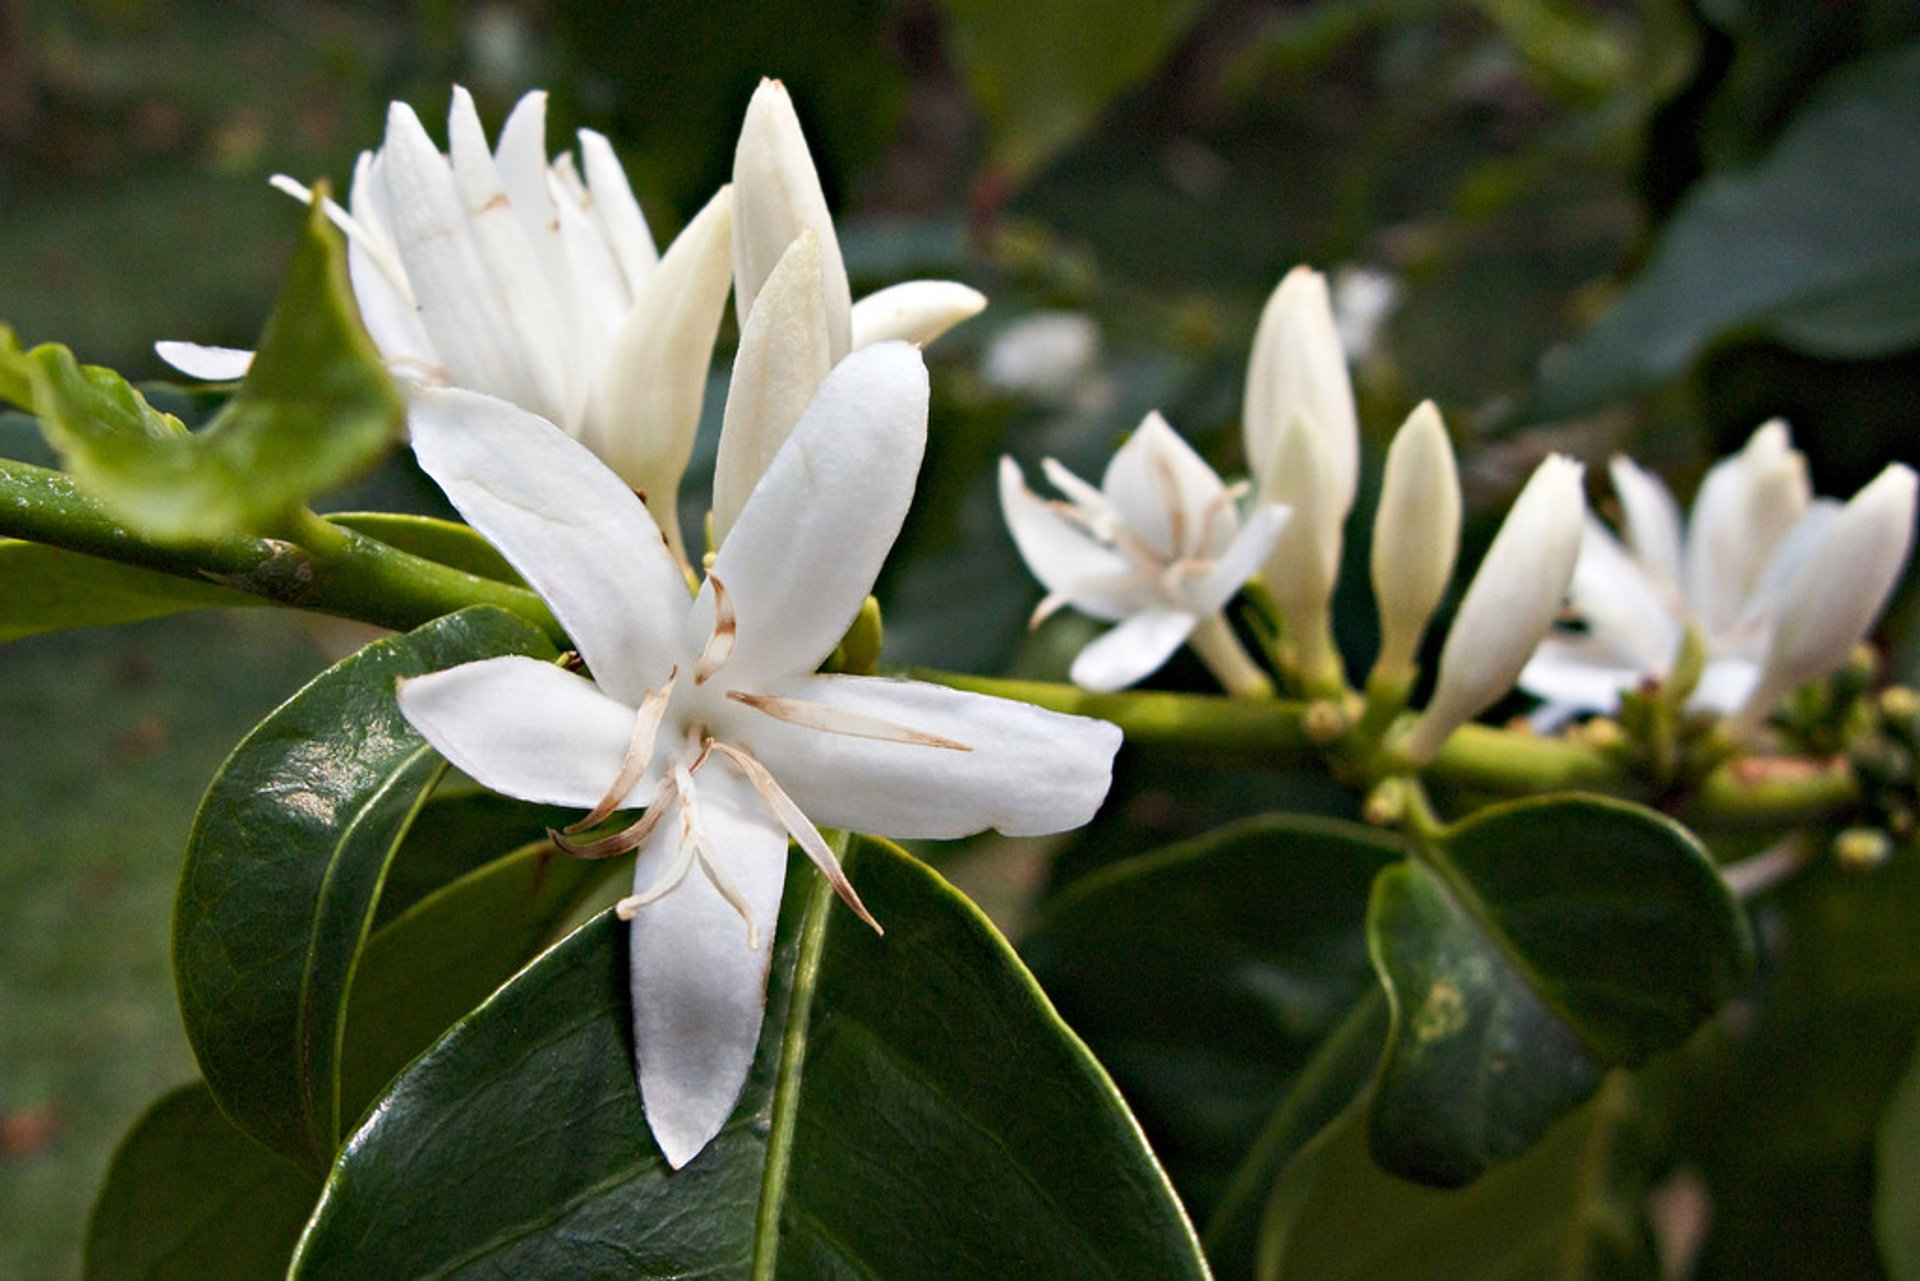 Kona Coffee Blossom or 'Kona Snow' in Hawaii 2020 - Best Time